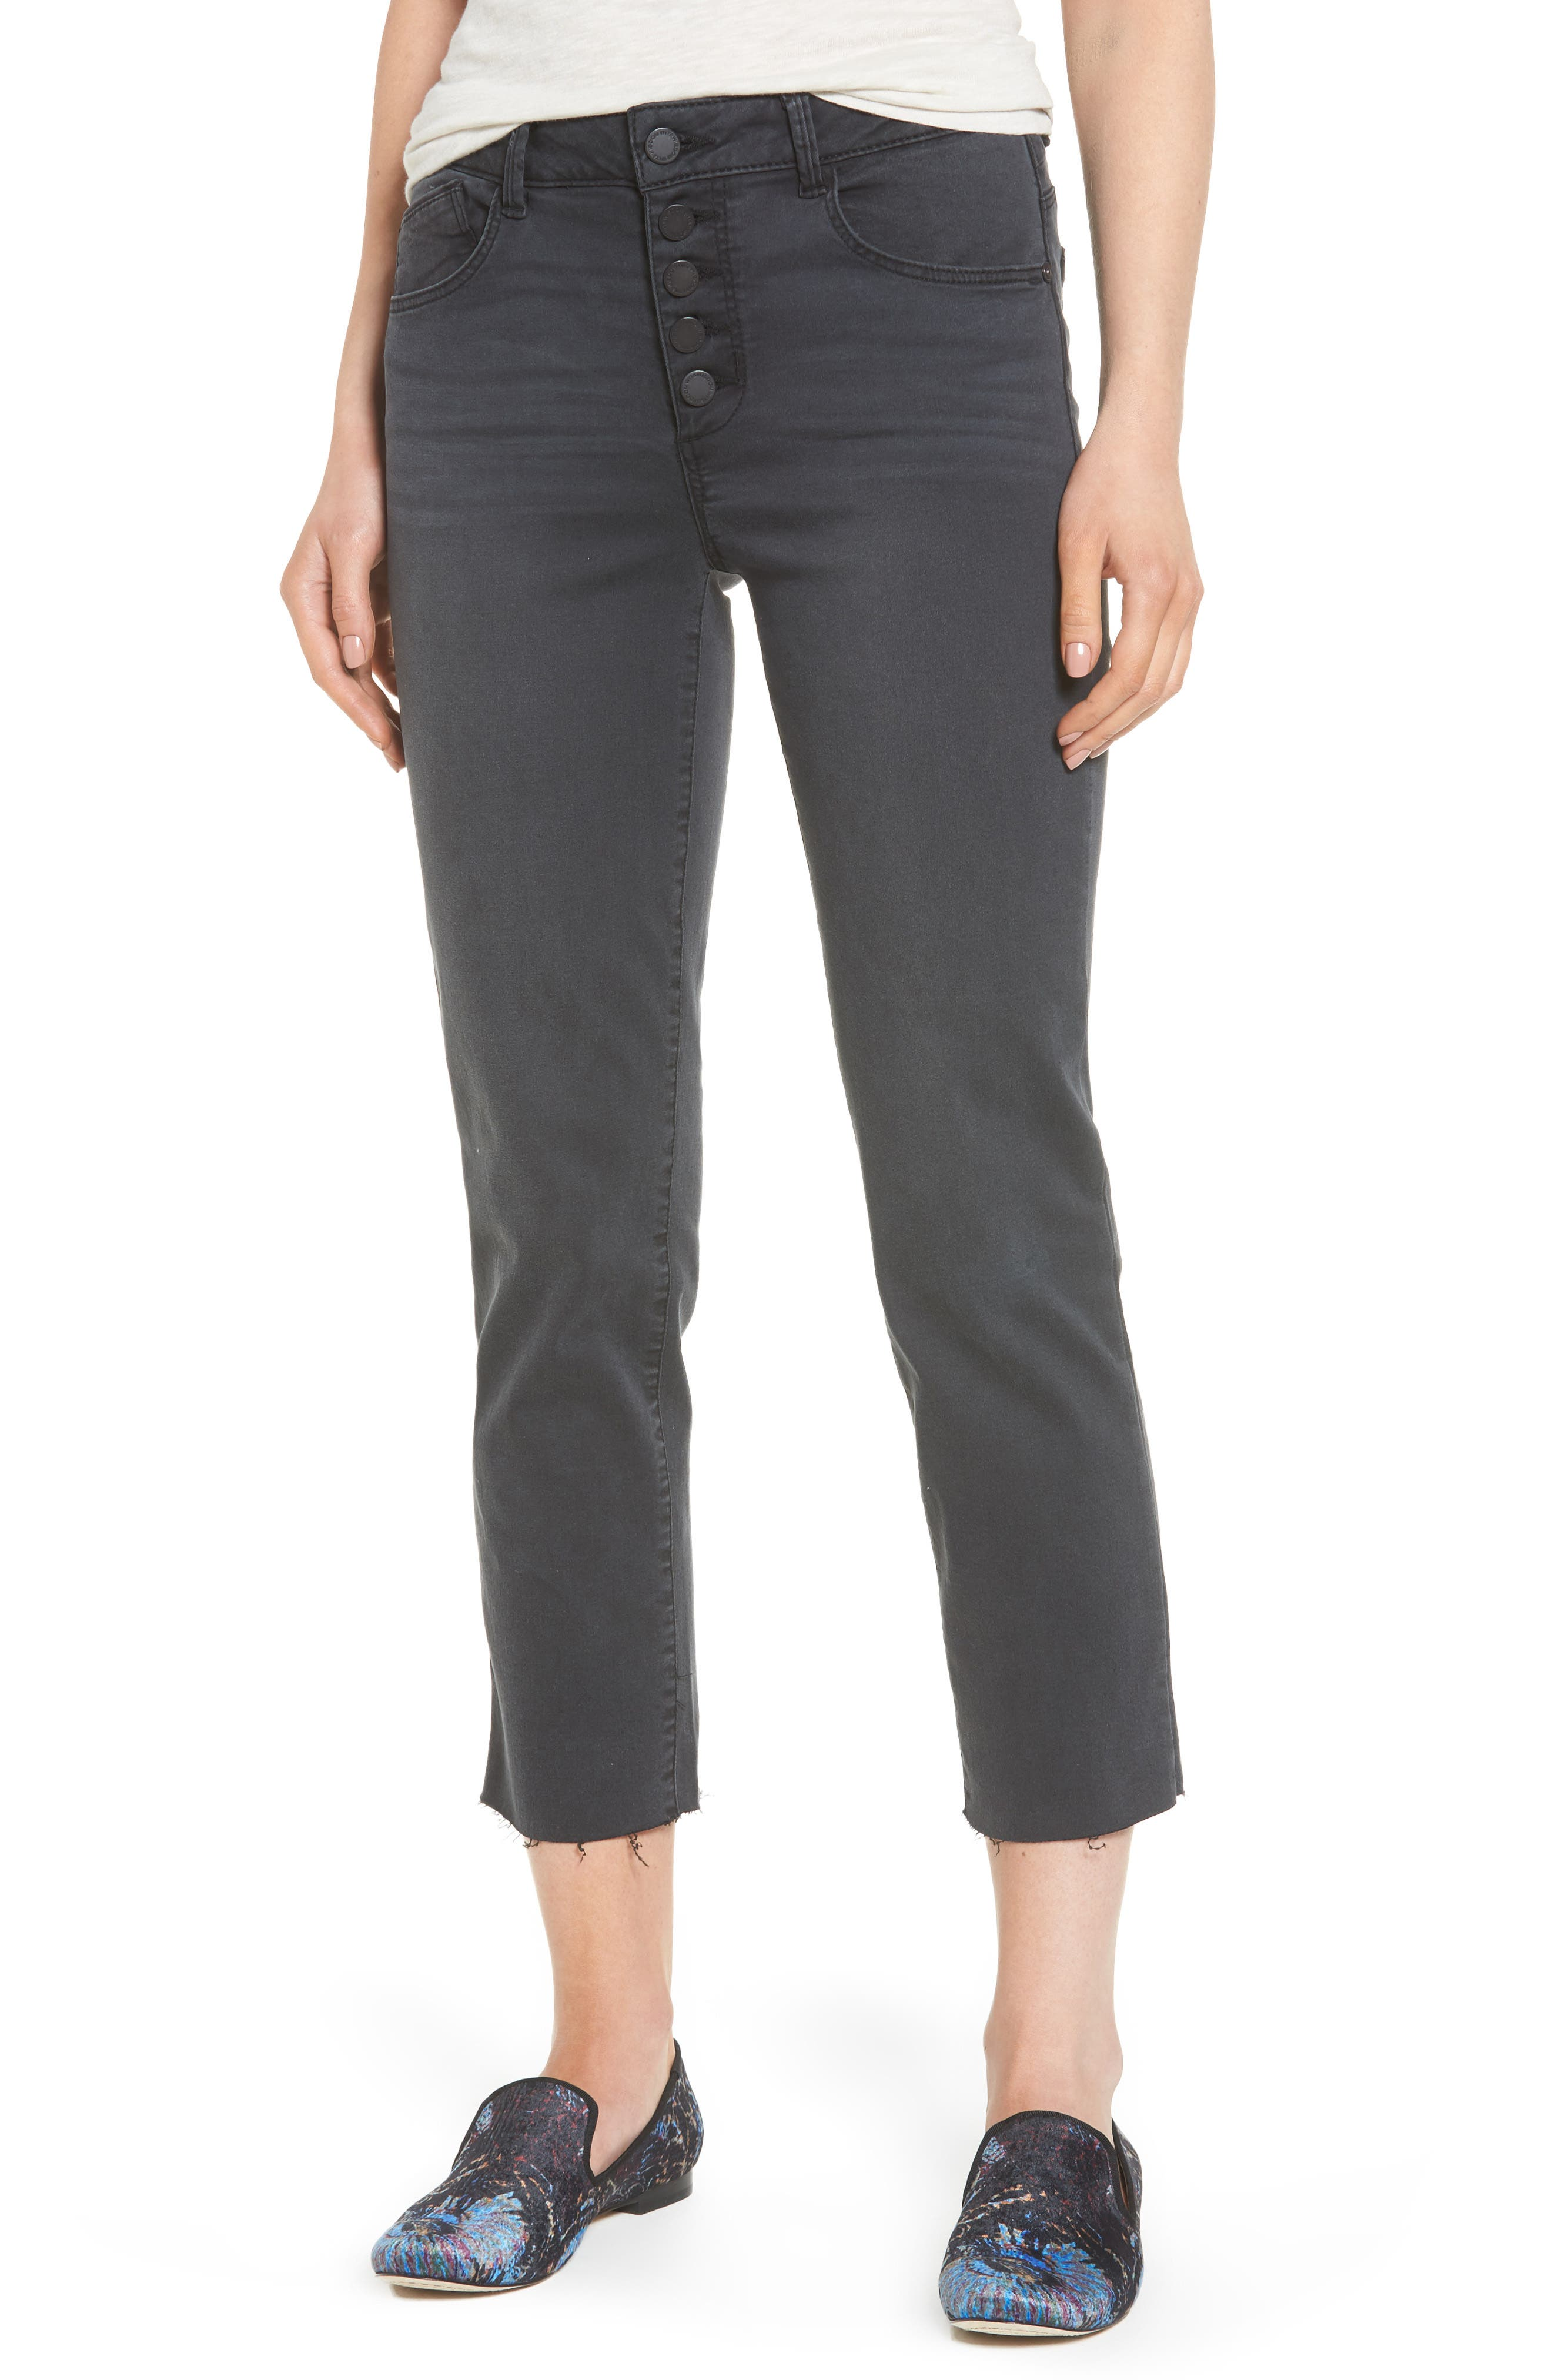 Wit & Wisdom Button Fly Crop Jeans (Regular & Petite) (Nordstrom Exclusive)